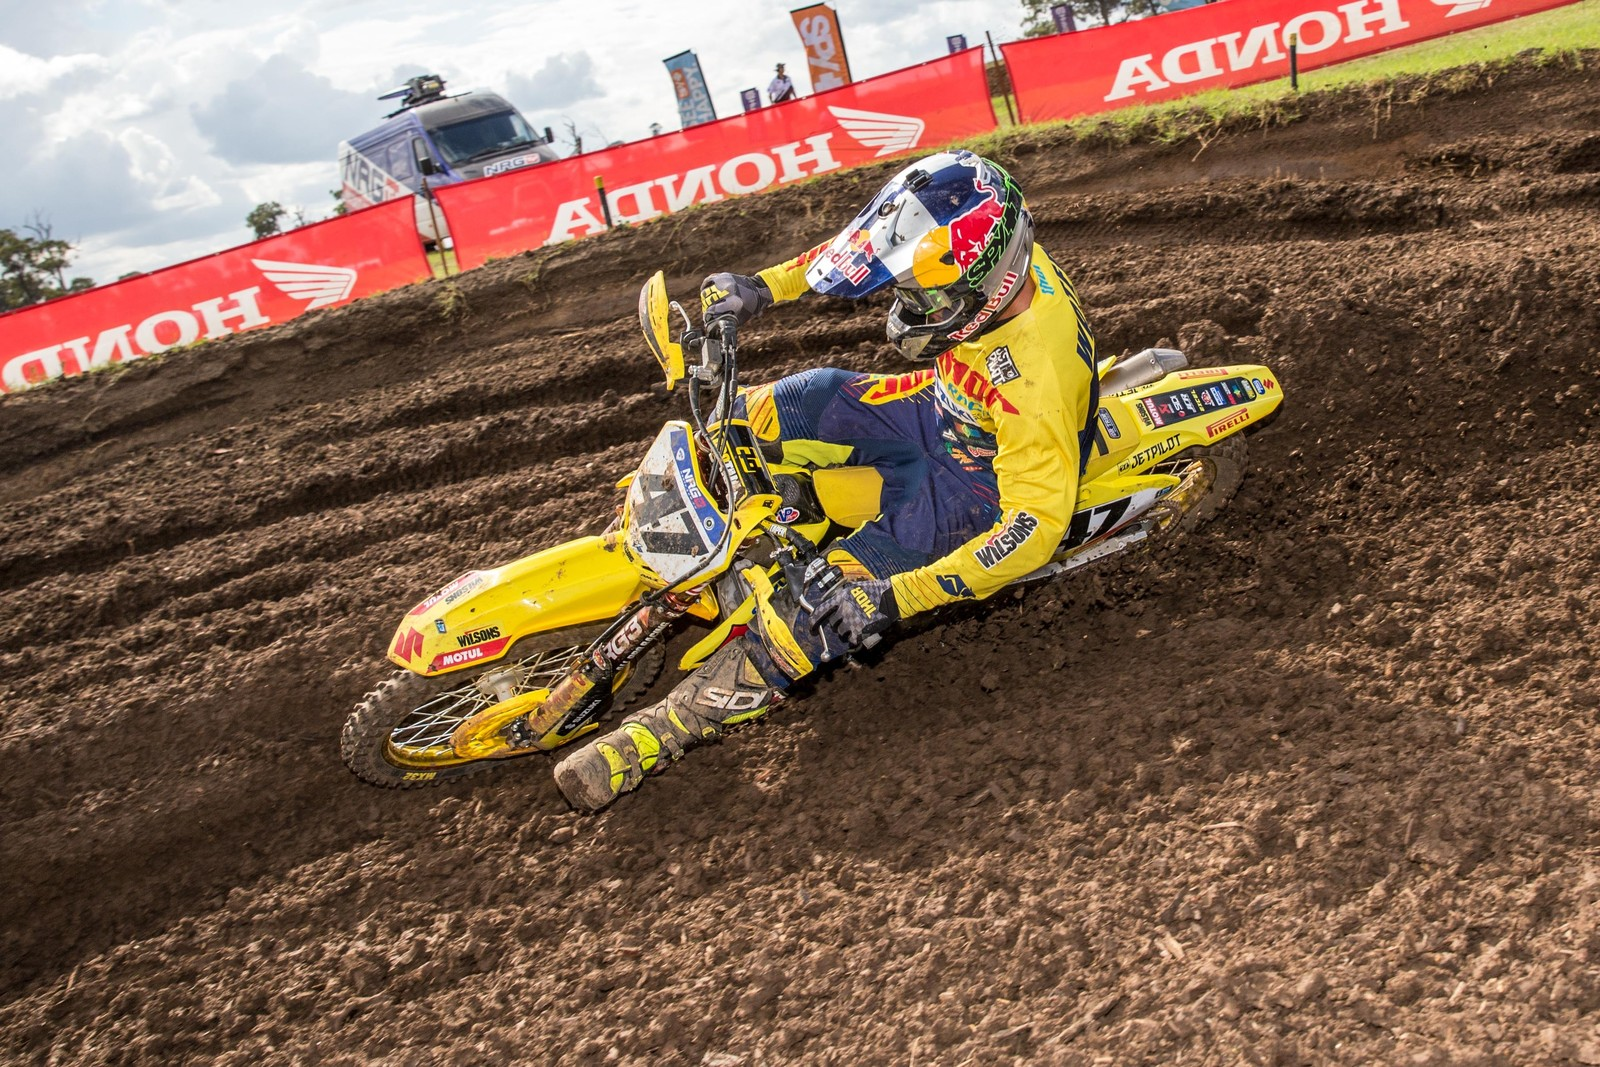 Todd Waters - Australian Motul Motocross Nationals Round 2, Appin - Motocross Pictures - Vital MX